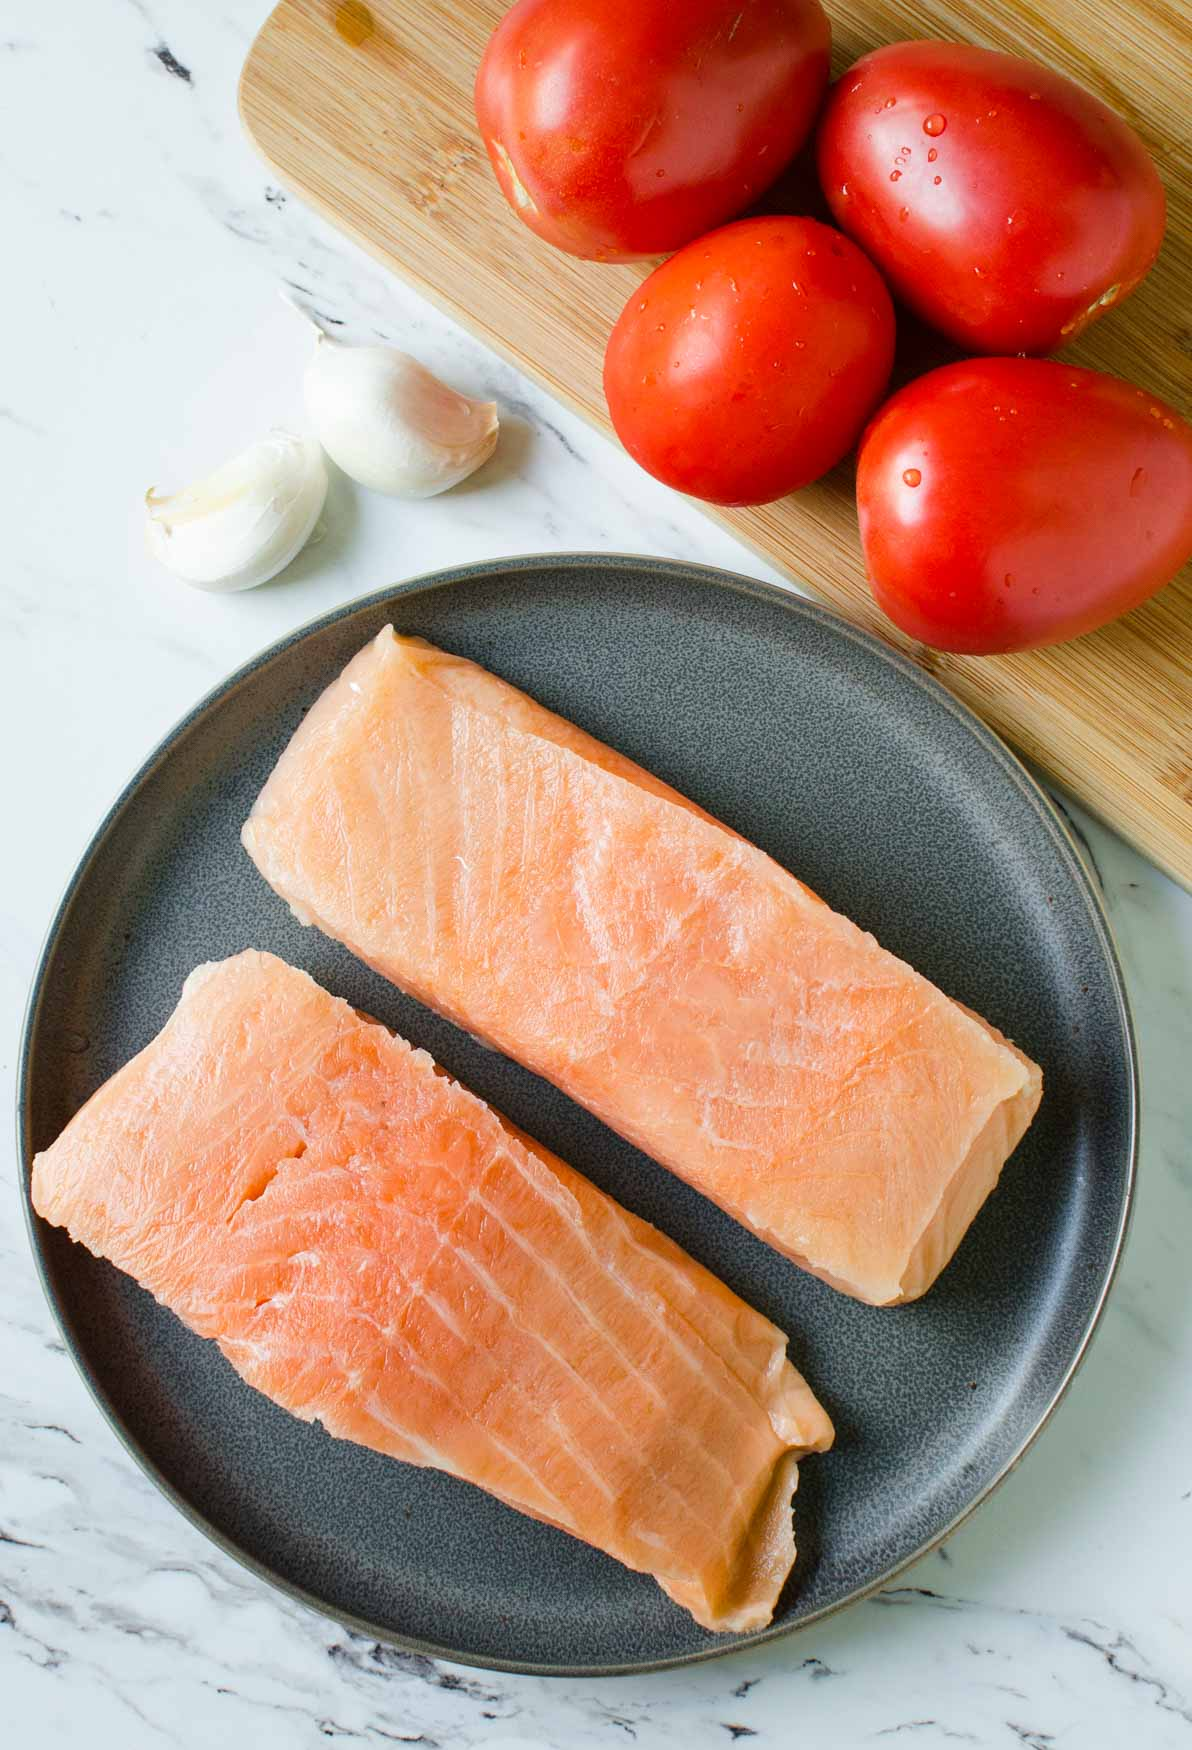 Ingredients for making Salmon in Tomato Sauce